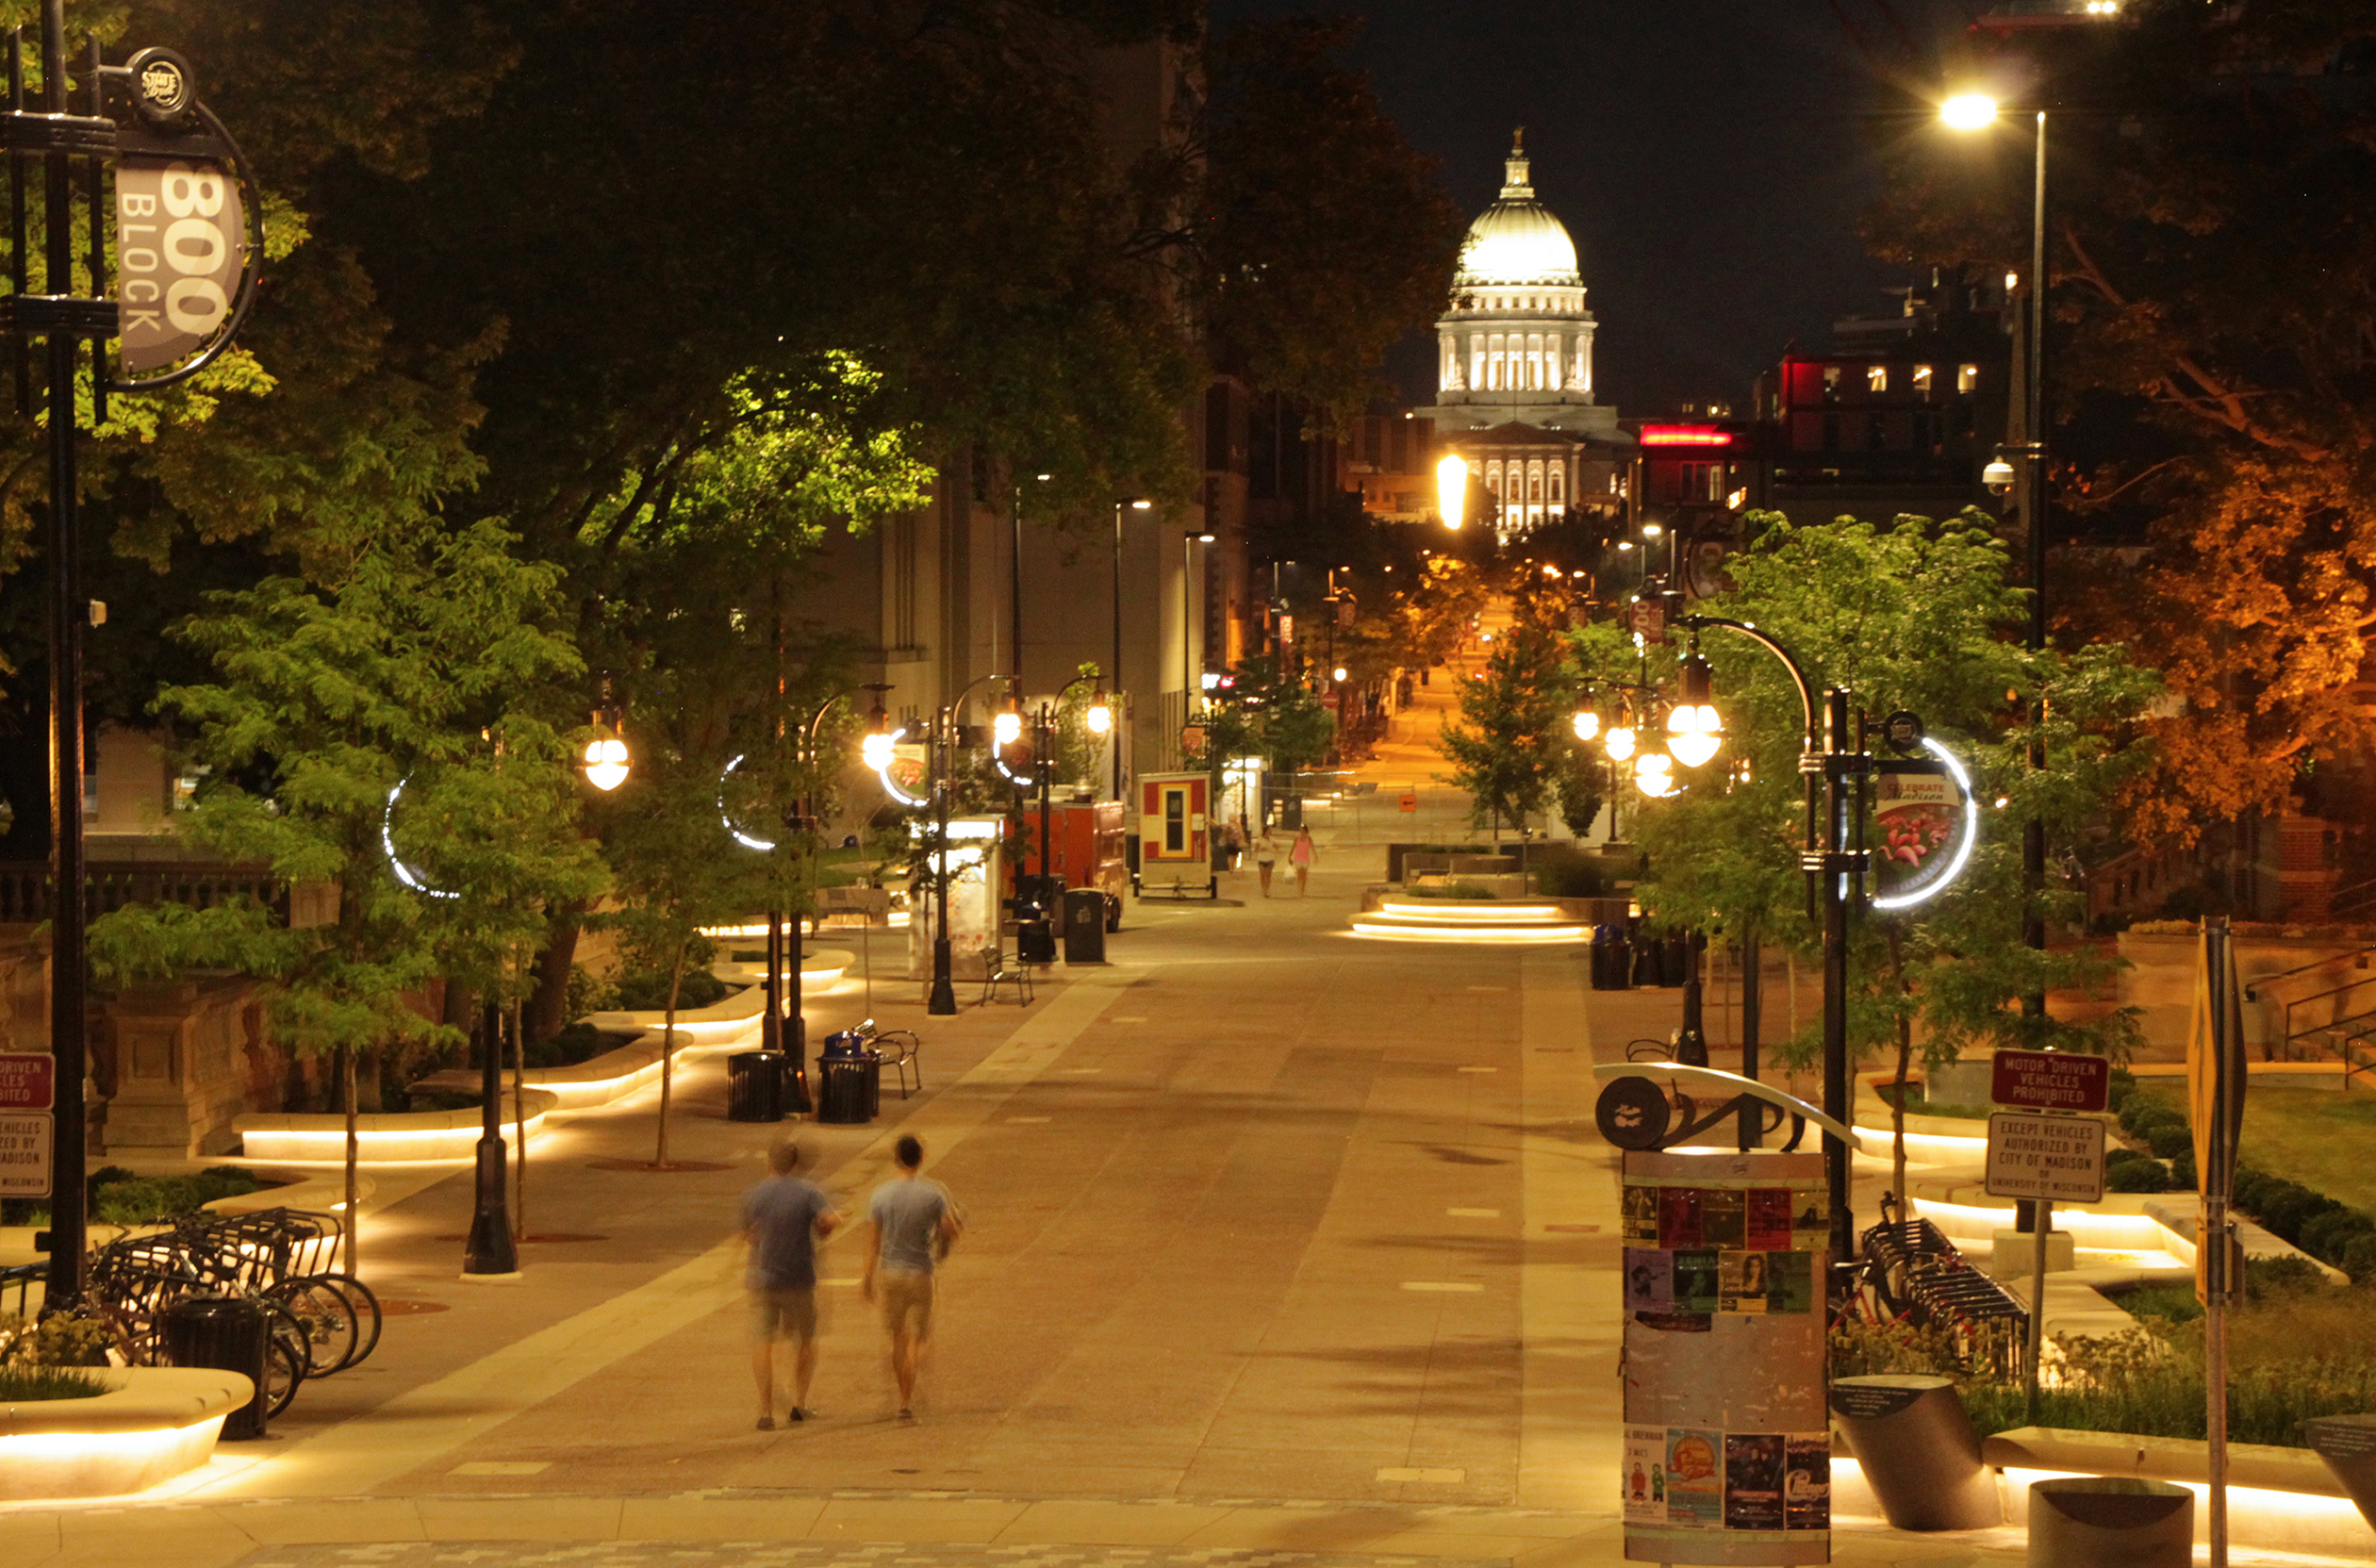 In the heart of the city and bookended by the State Capitol and the University of Wisconsin lies State Street, perhaps one of the most visited places in all of Madison.